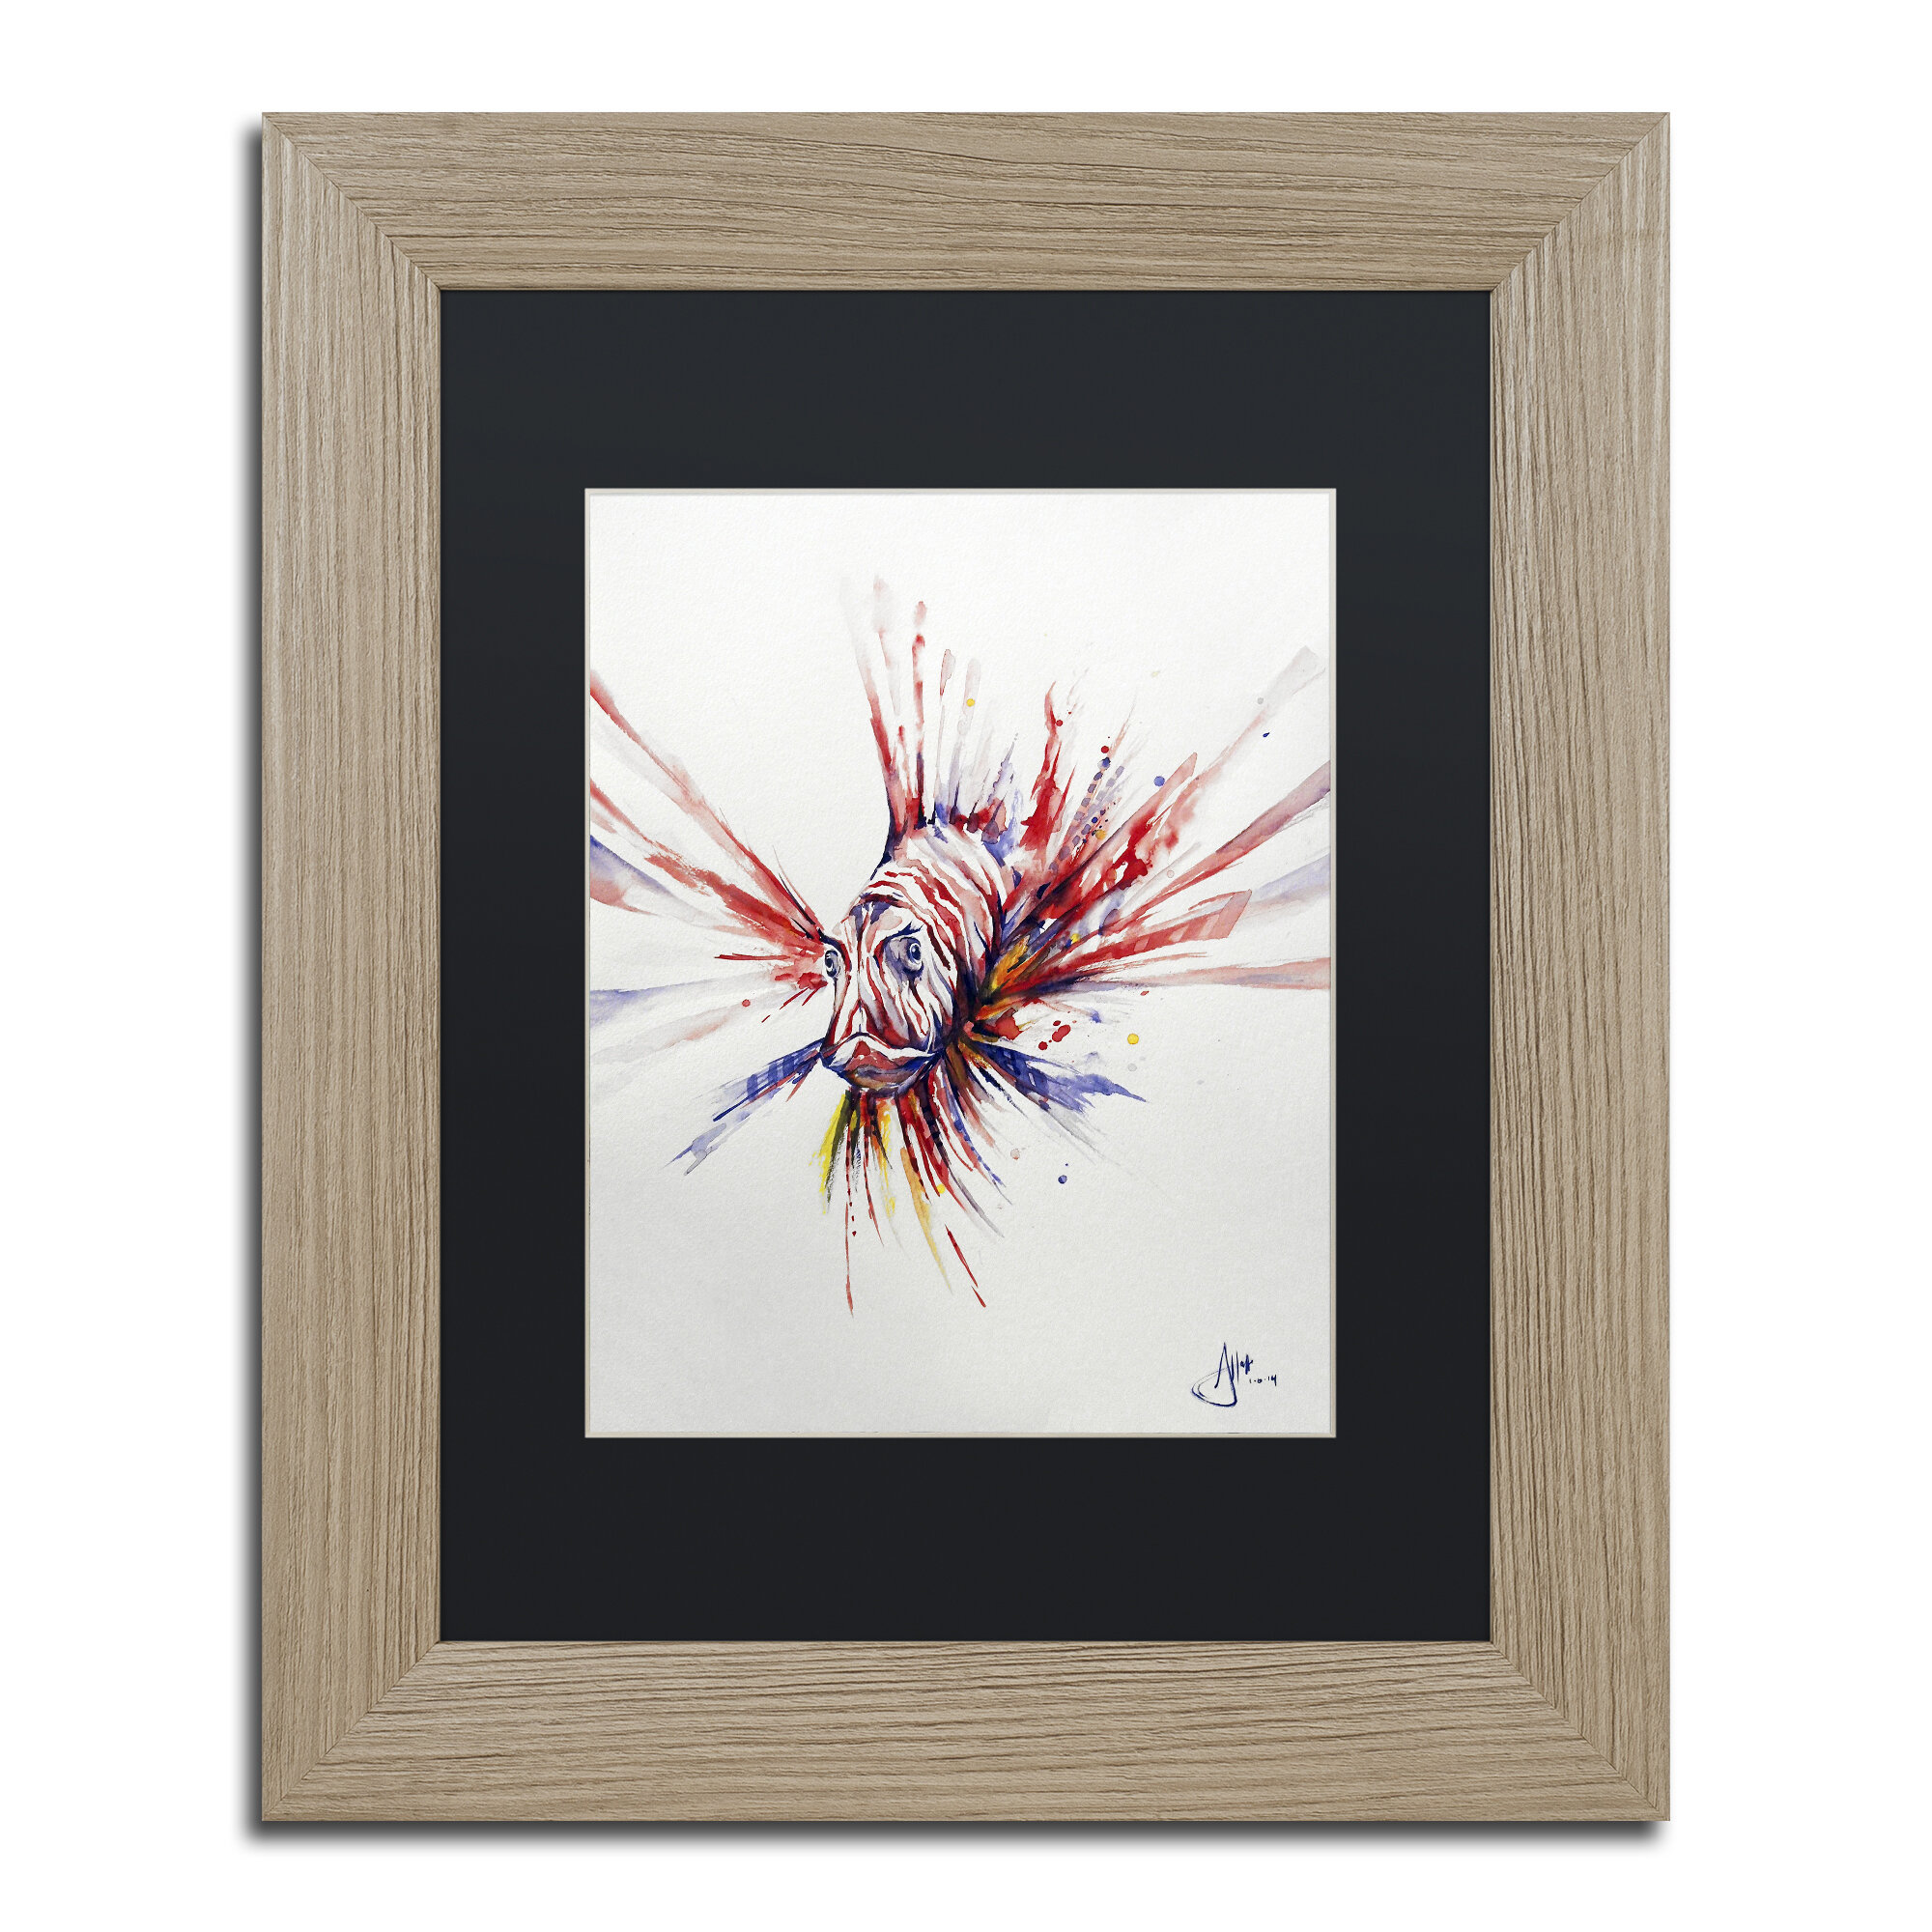 Trademark Art Pterois Matted Framed Painting Print On Canvas Wayfair